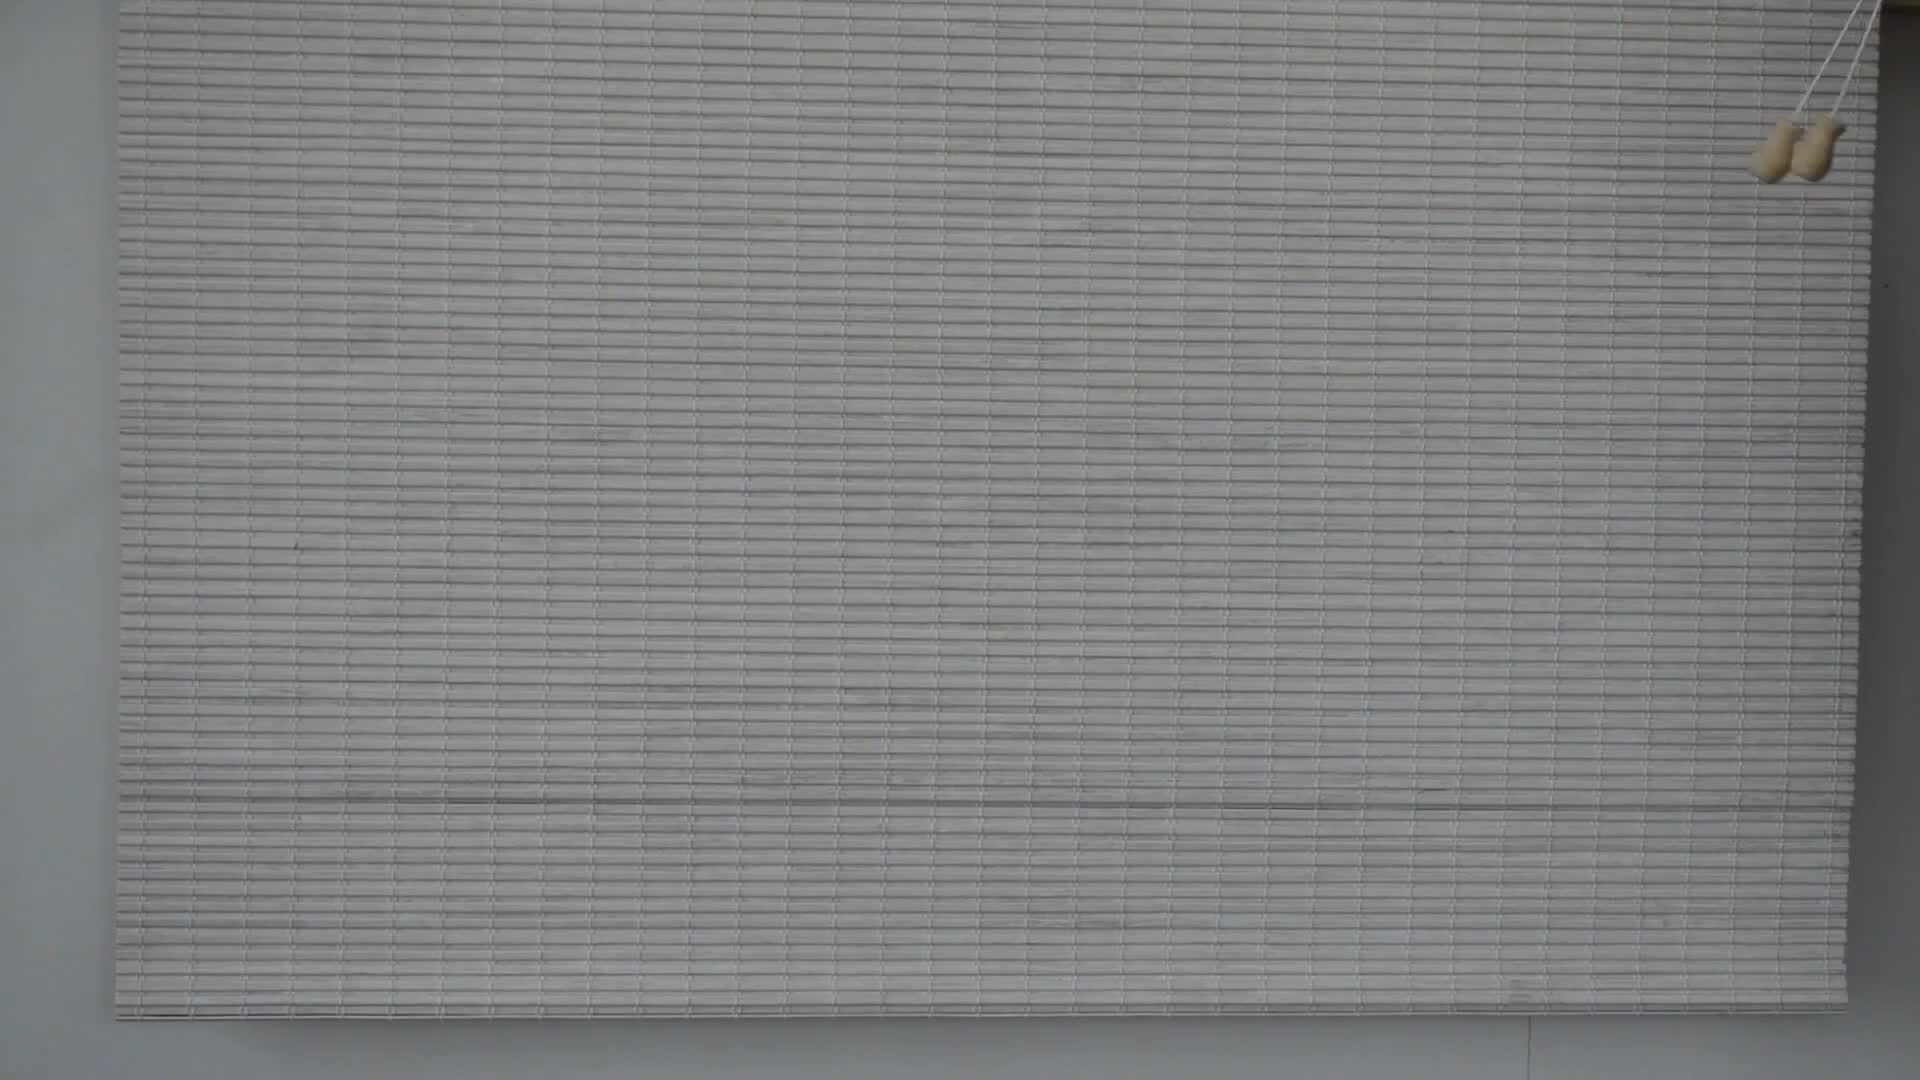 Bamboo Blinds Blackout Overlapping Slats Roman Style Bamboo Shades Rolling Up Natural Made Shutter With Valance No.BB_FS